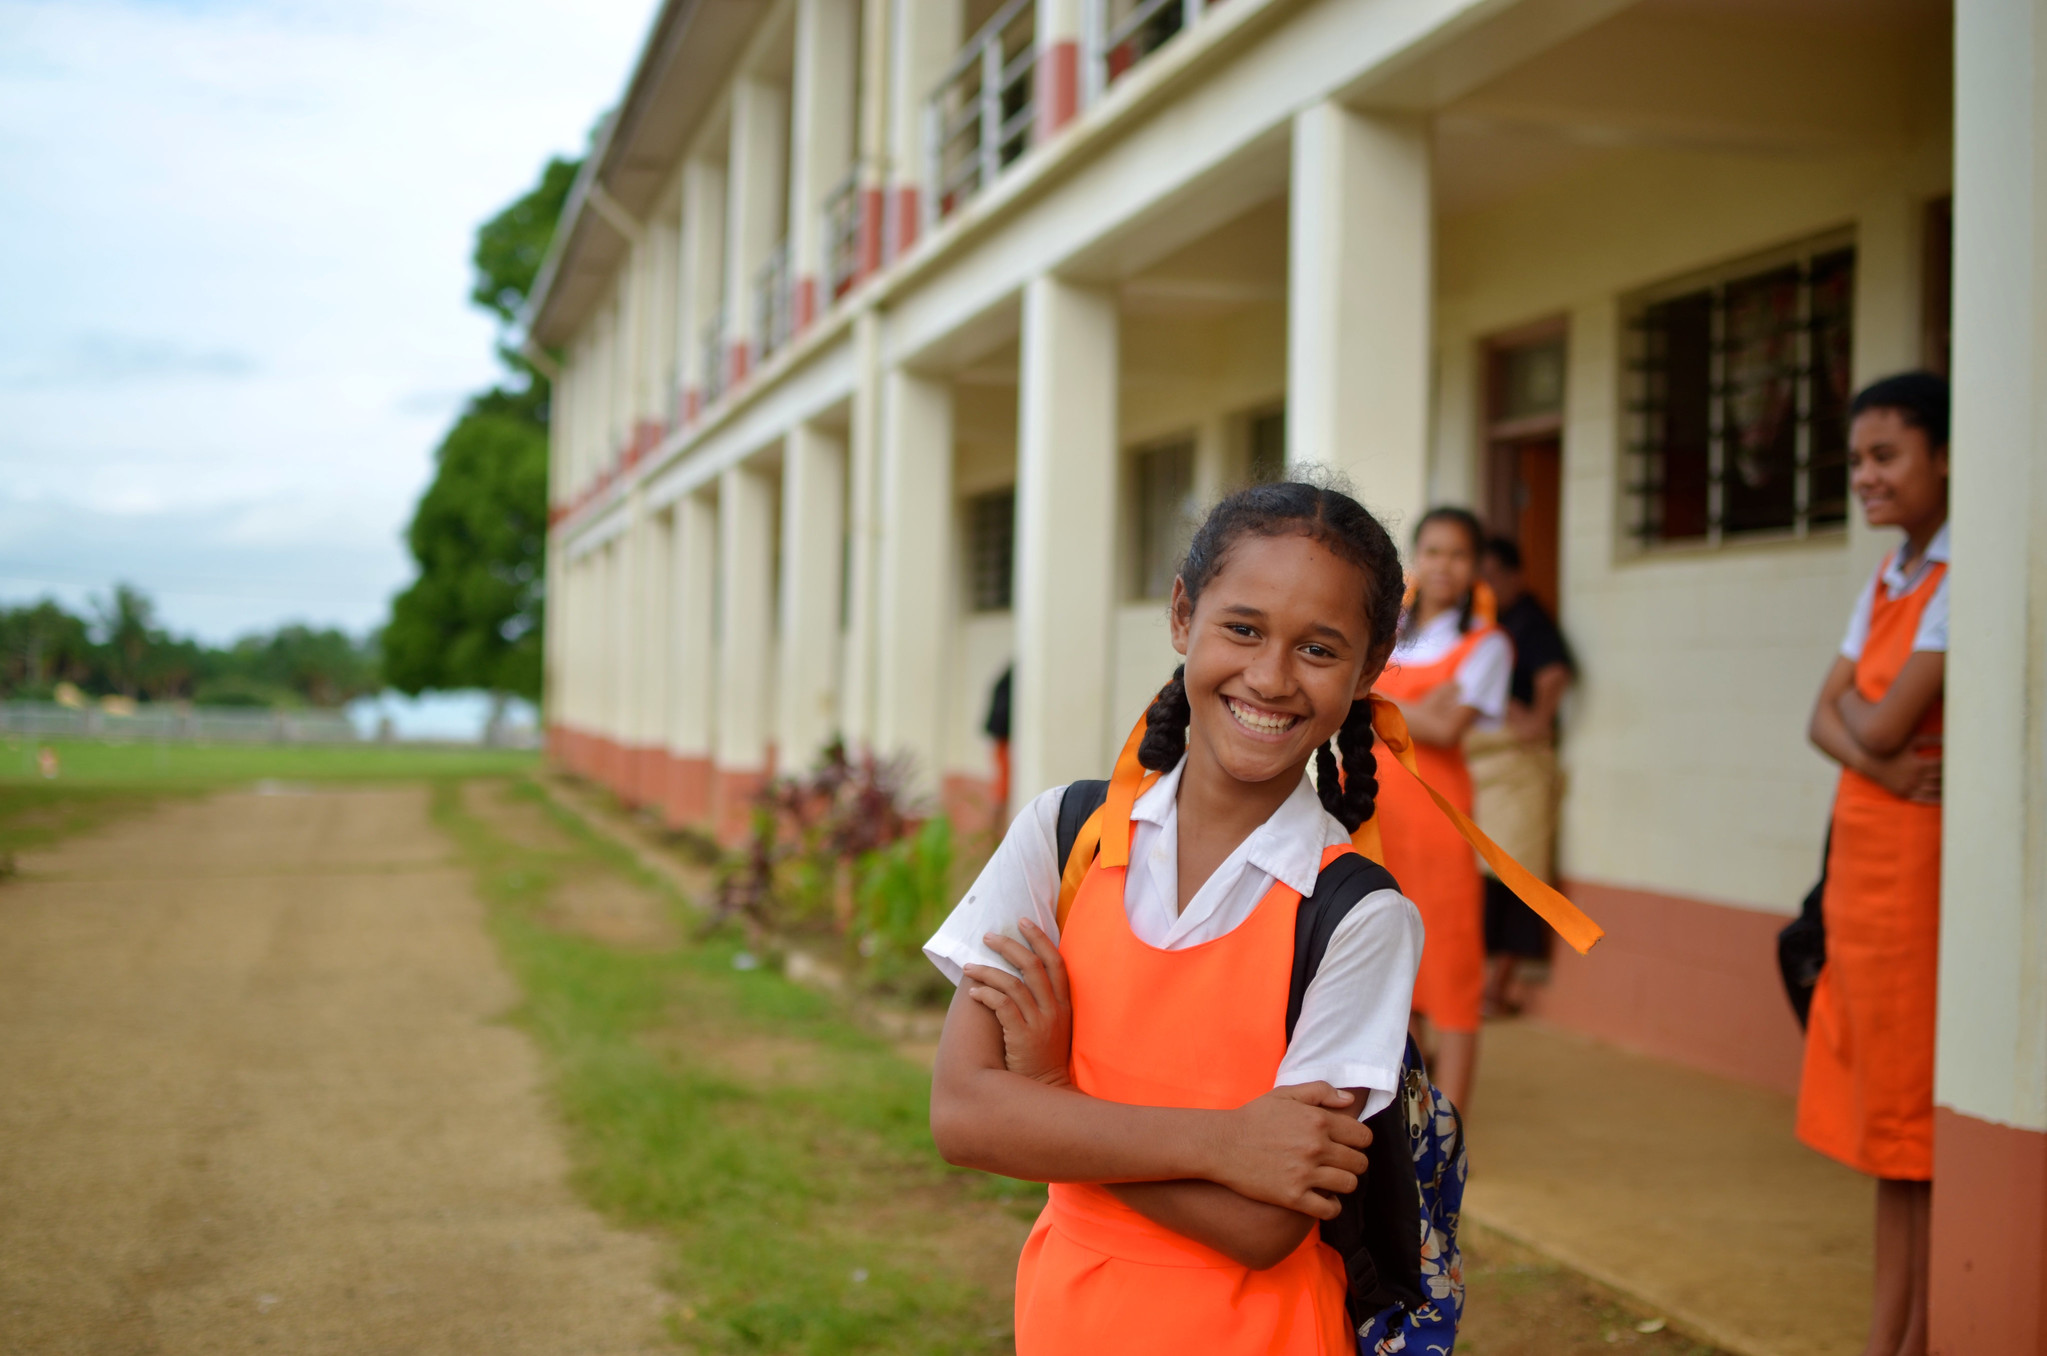 With the arrival of high-speed broadband internet in Tonga, students have more access to education.